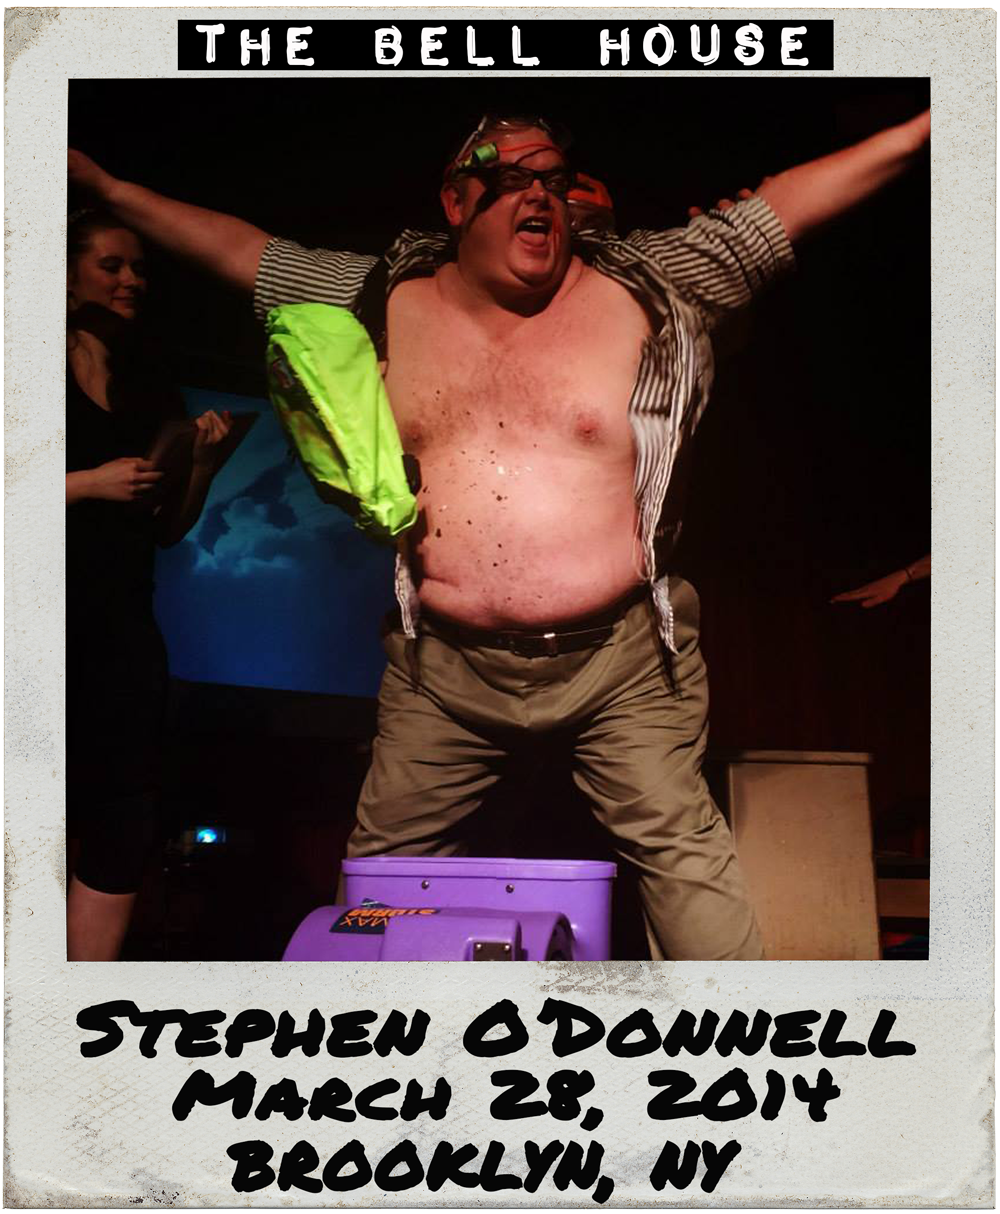 03_28_14_Stephen-O'Donnell_Bell-House.png